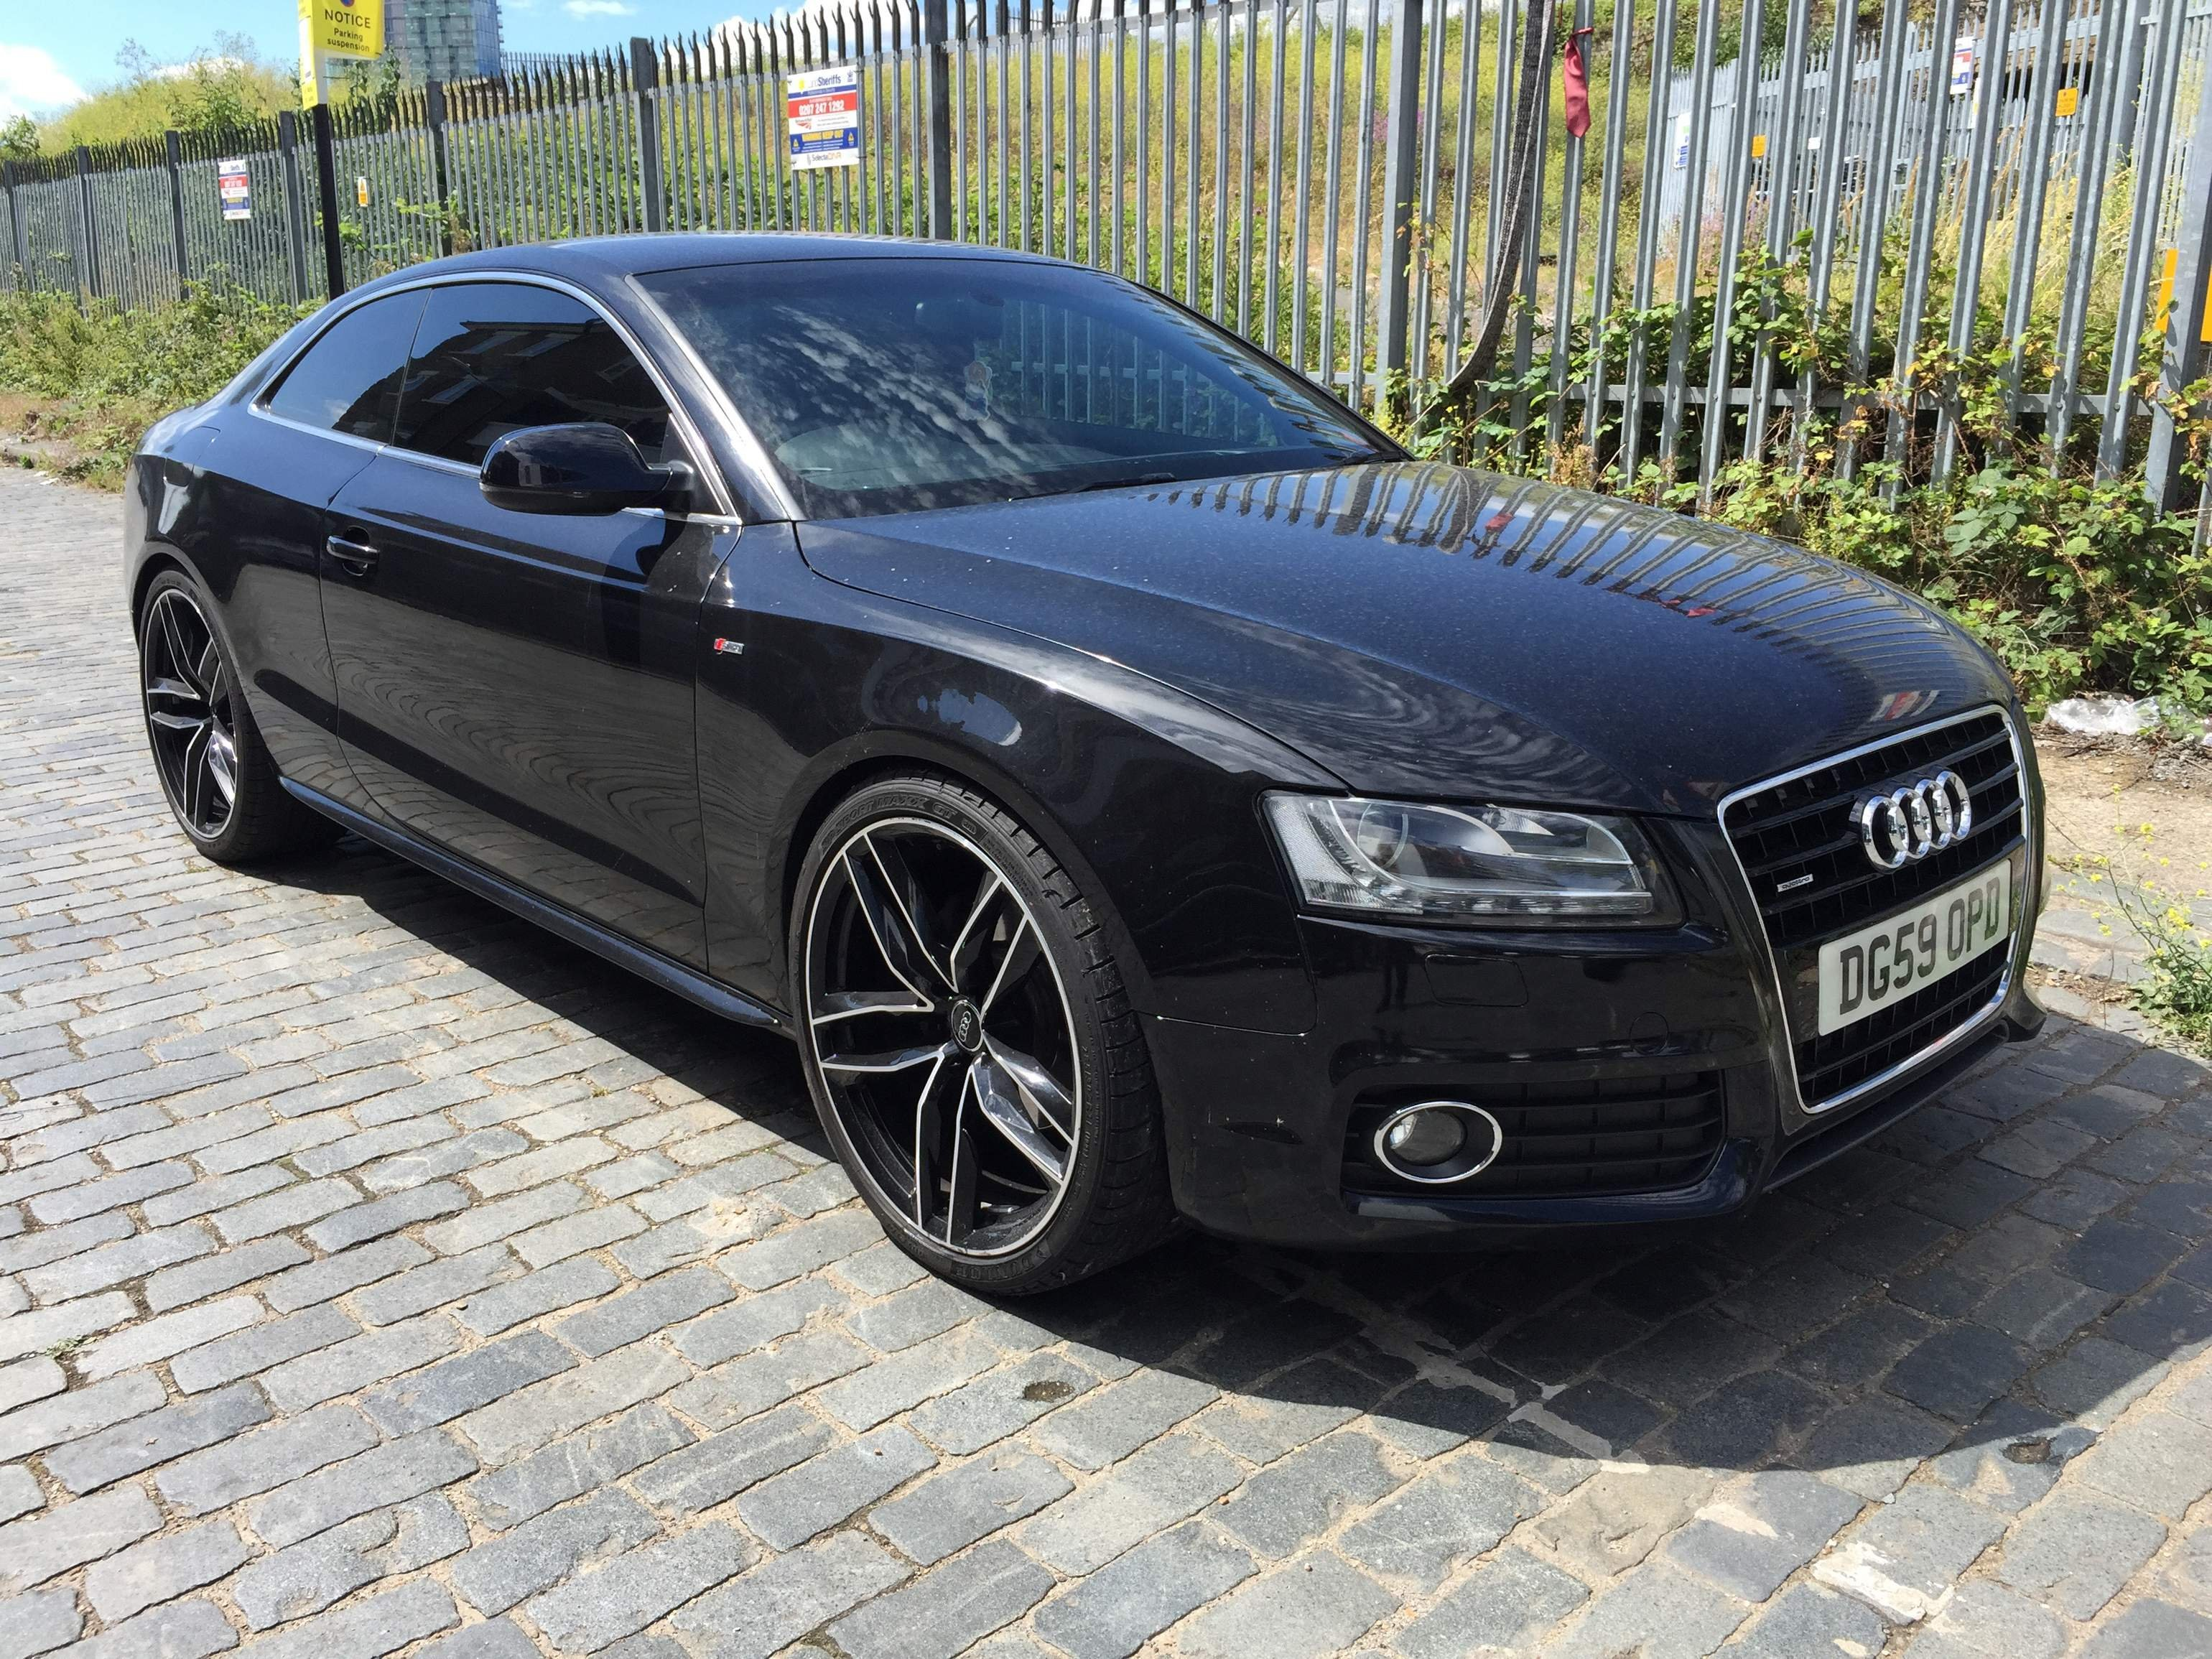 Facelifting My 2009 Audi A5 Coupe 3 0 Adding 21 Rs6 Alloys Rs5 Bootlid Audi A5 Forum Audi S5 Forum